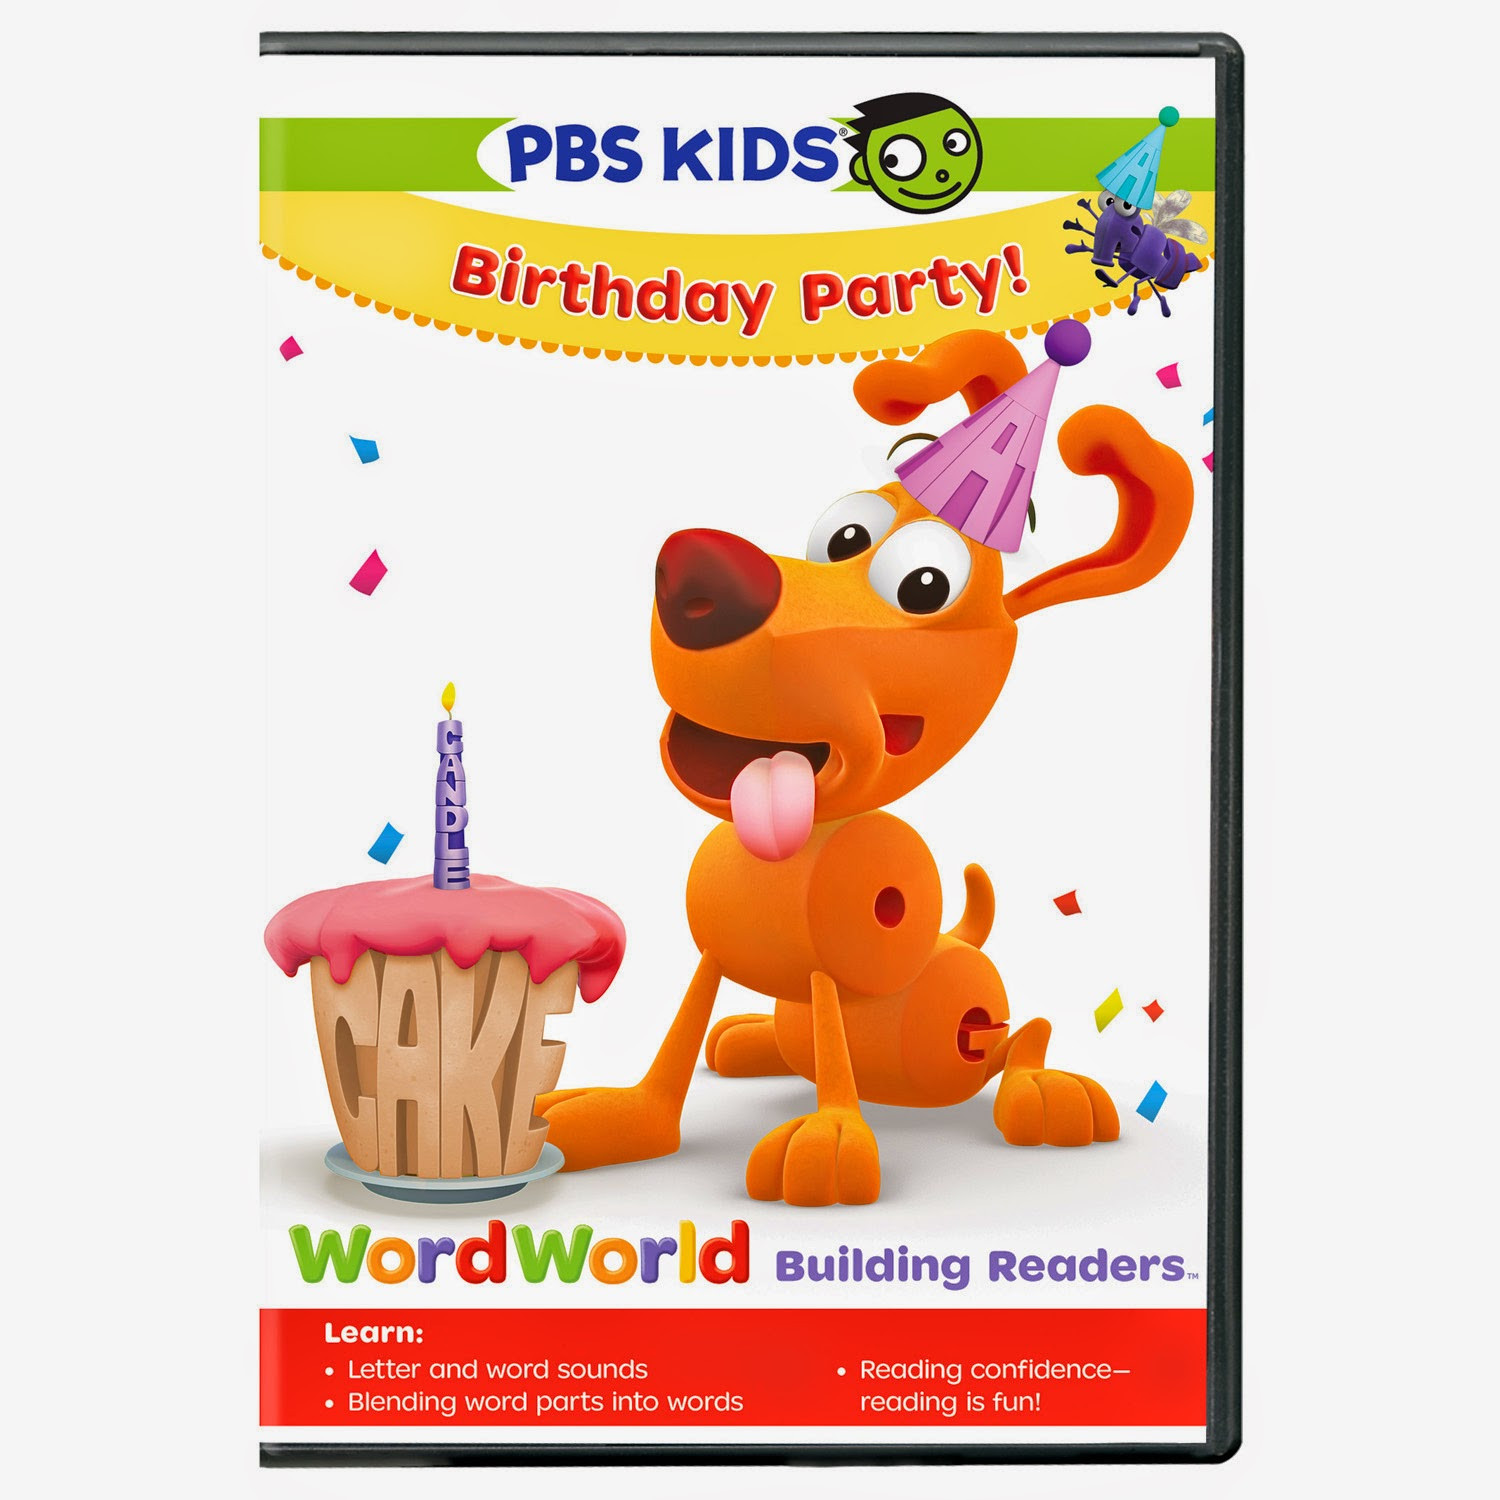 Pbs Kids Party  Going Full Throttle PBS Kids Word World Birthday Party